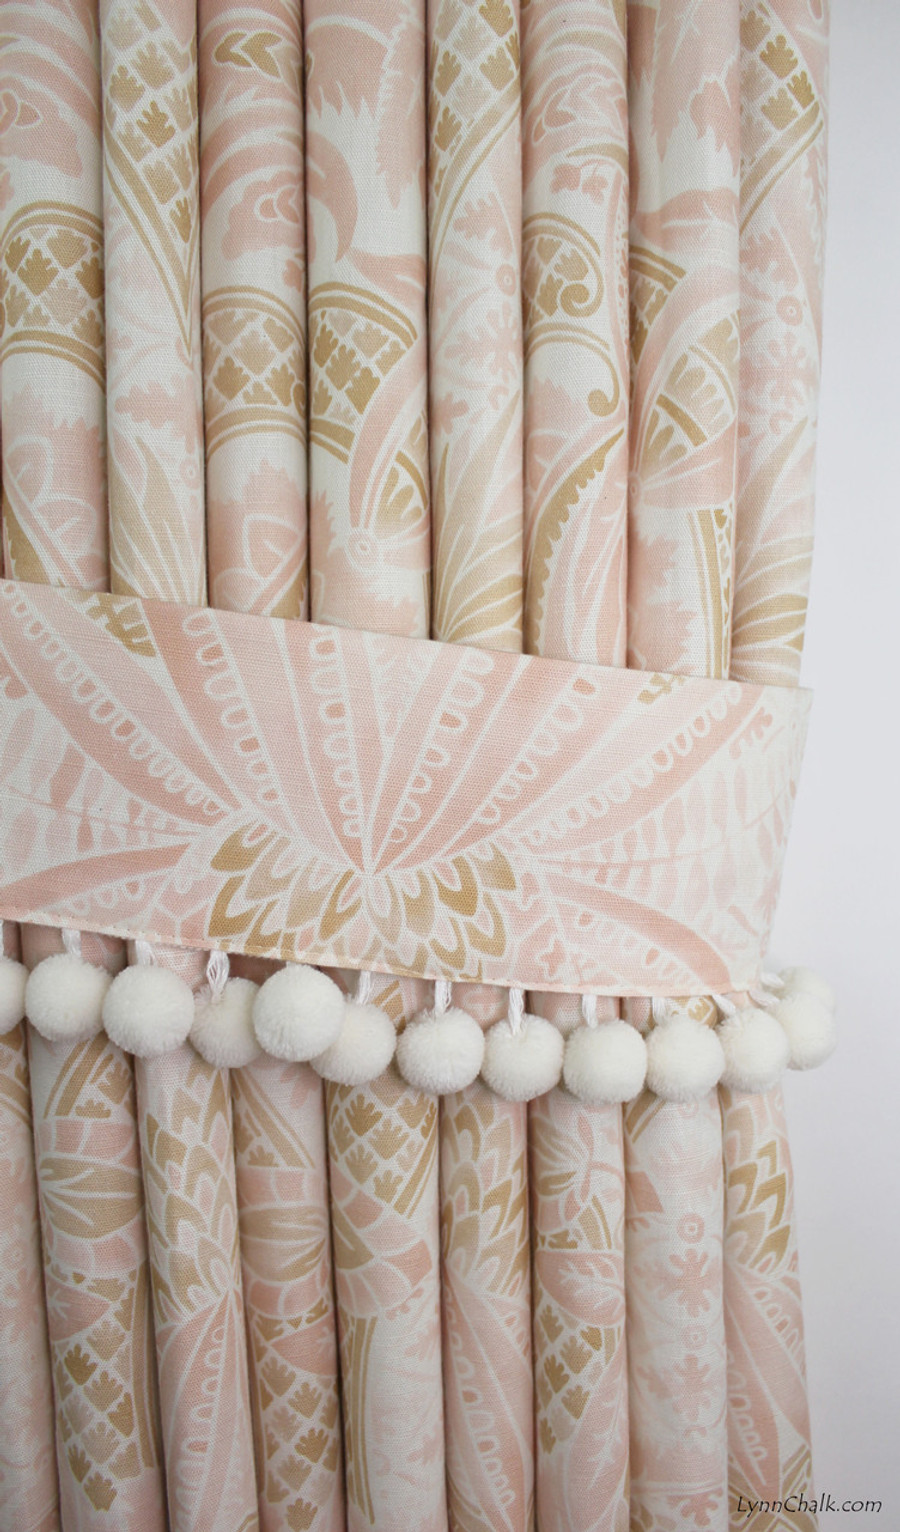 Custom Drapes in Cap Ferrat Blush with Tie Back.  Pom Pom Trim by Samuel and Sons in Whipped Cream